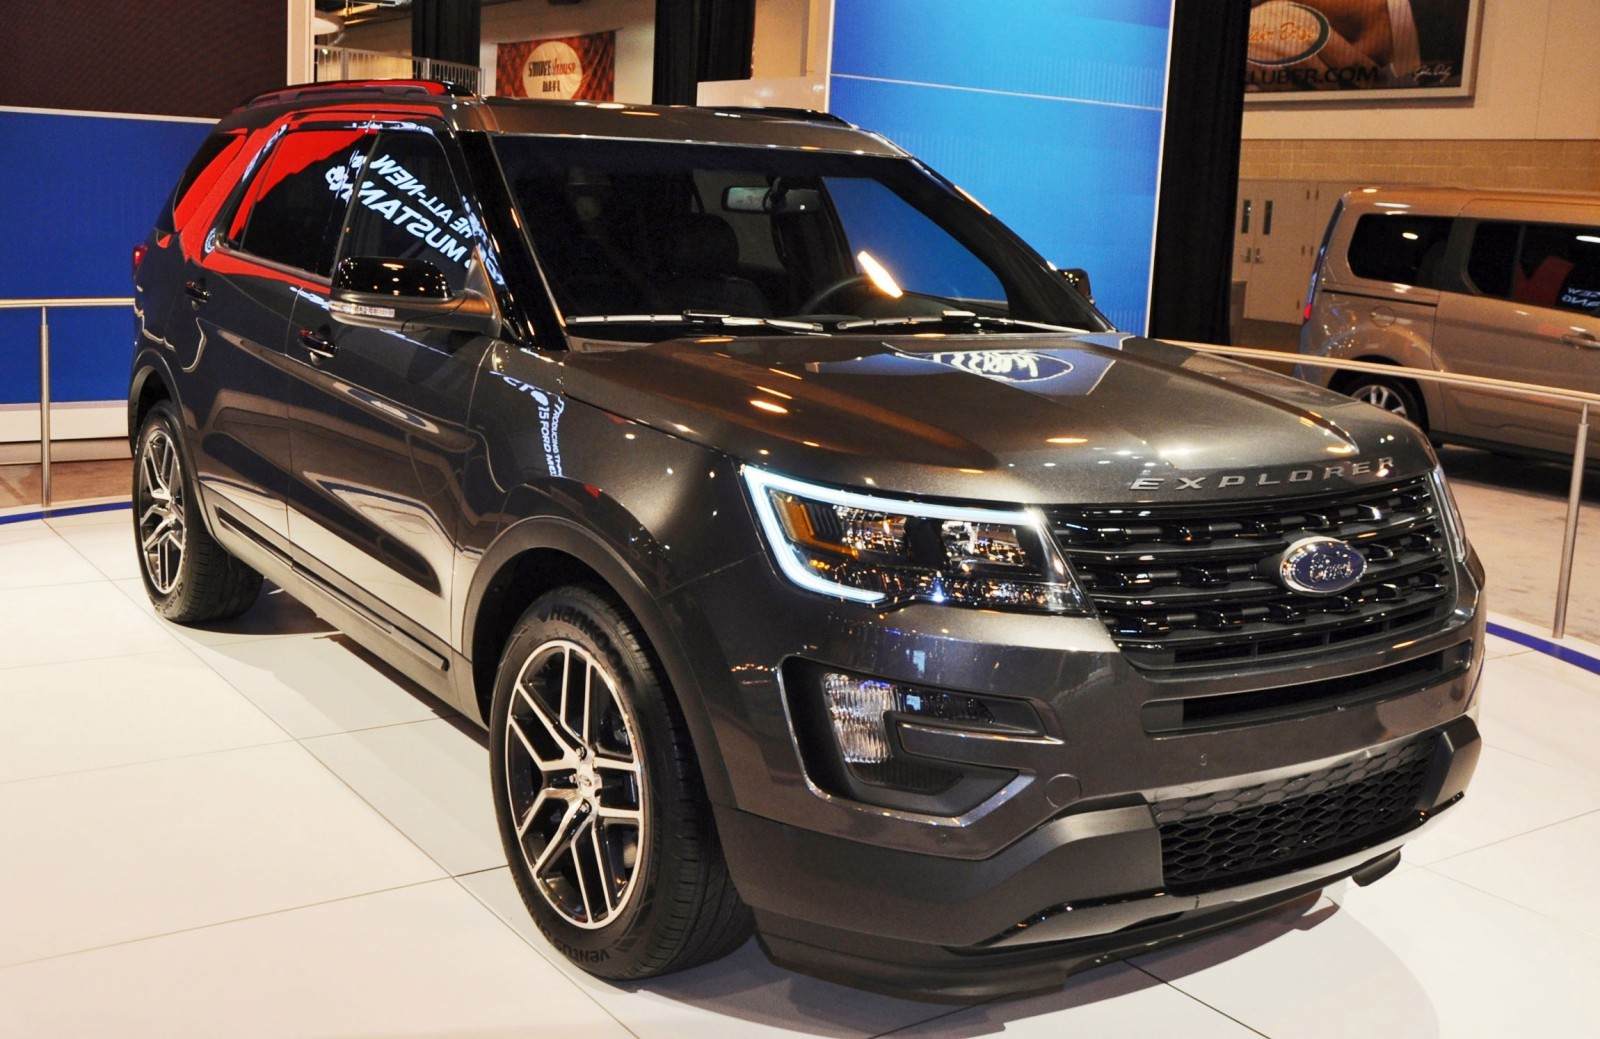 2016 ford explorer sport. Black Bedroom Furniture Sets. Home Design Ideas